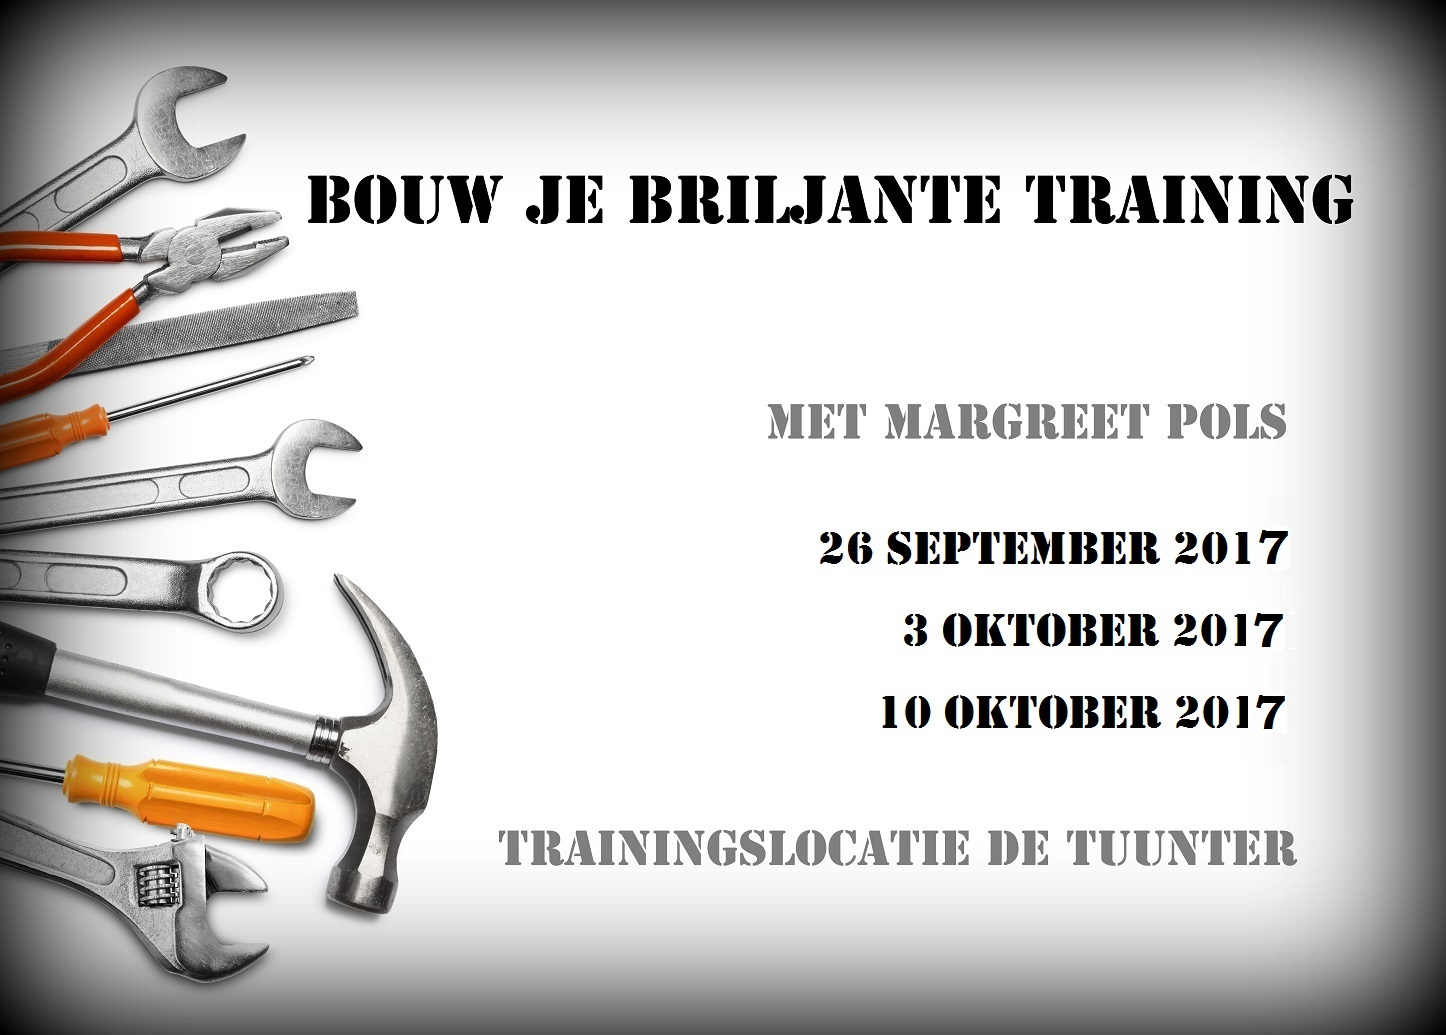 bouw je briljante training